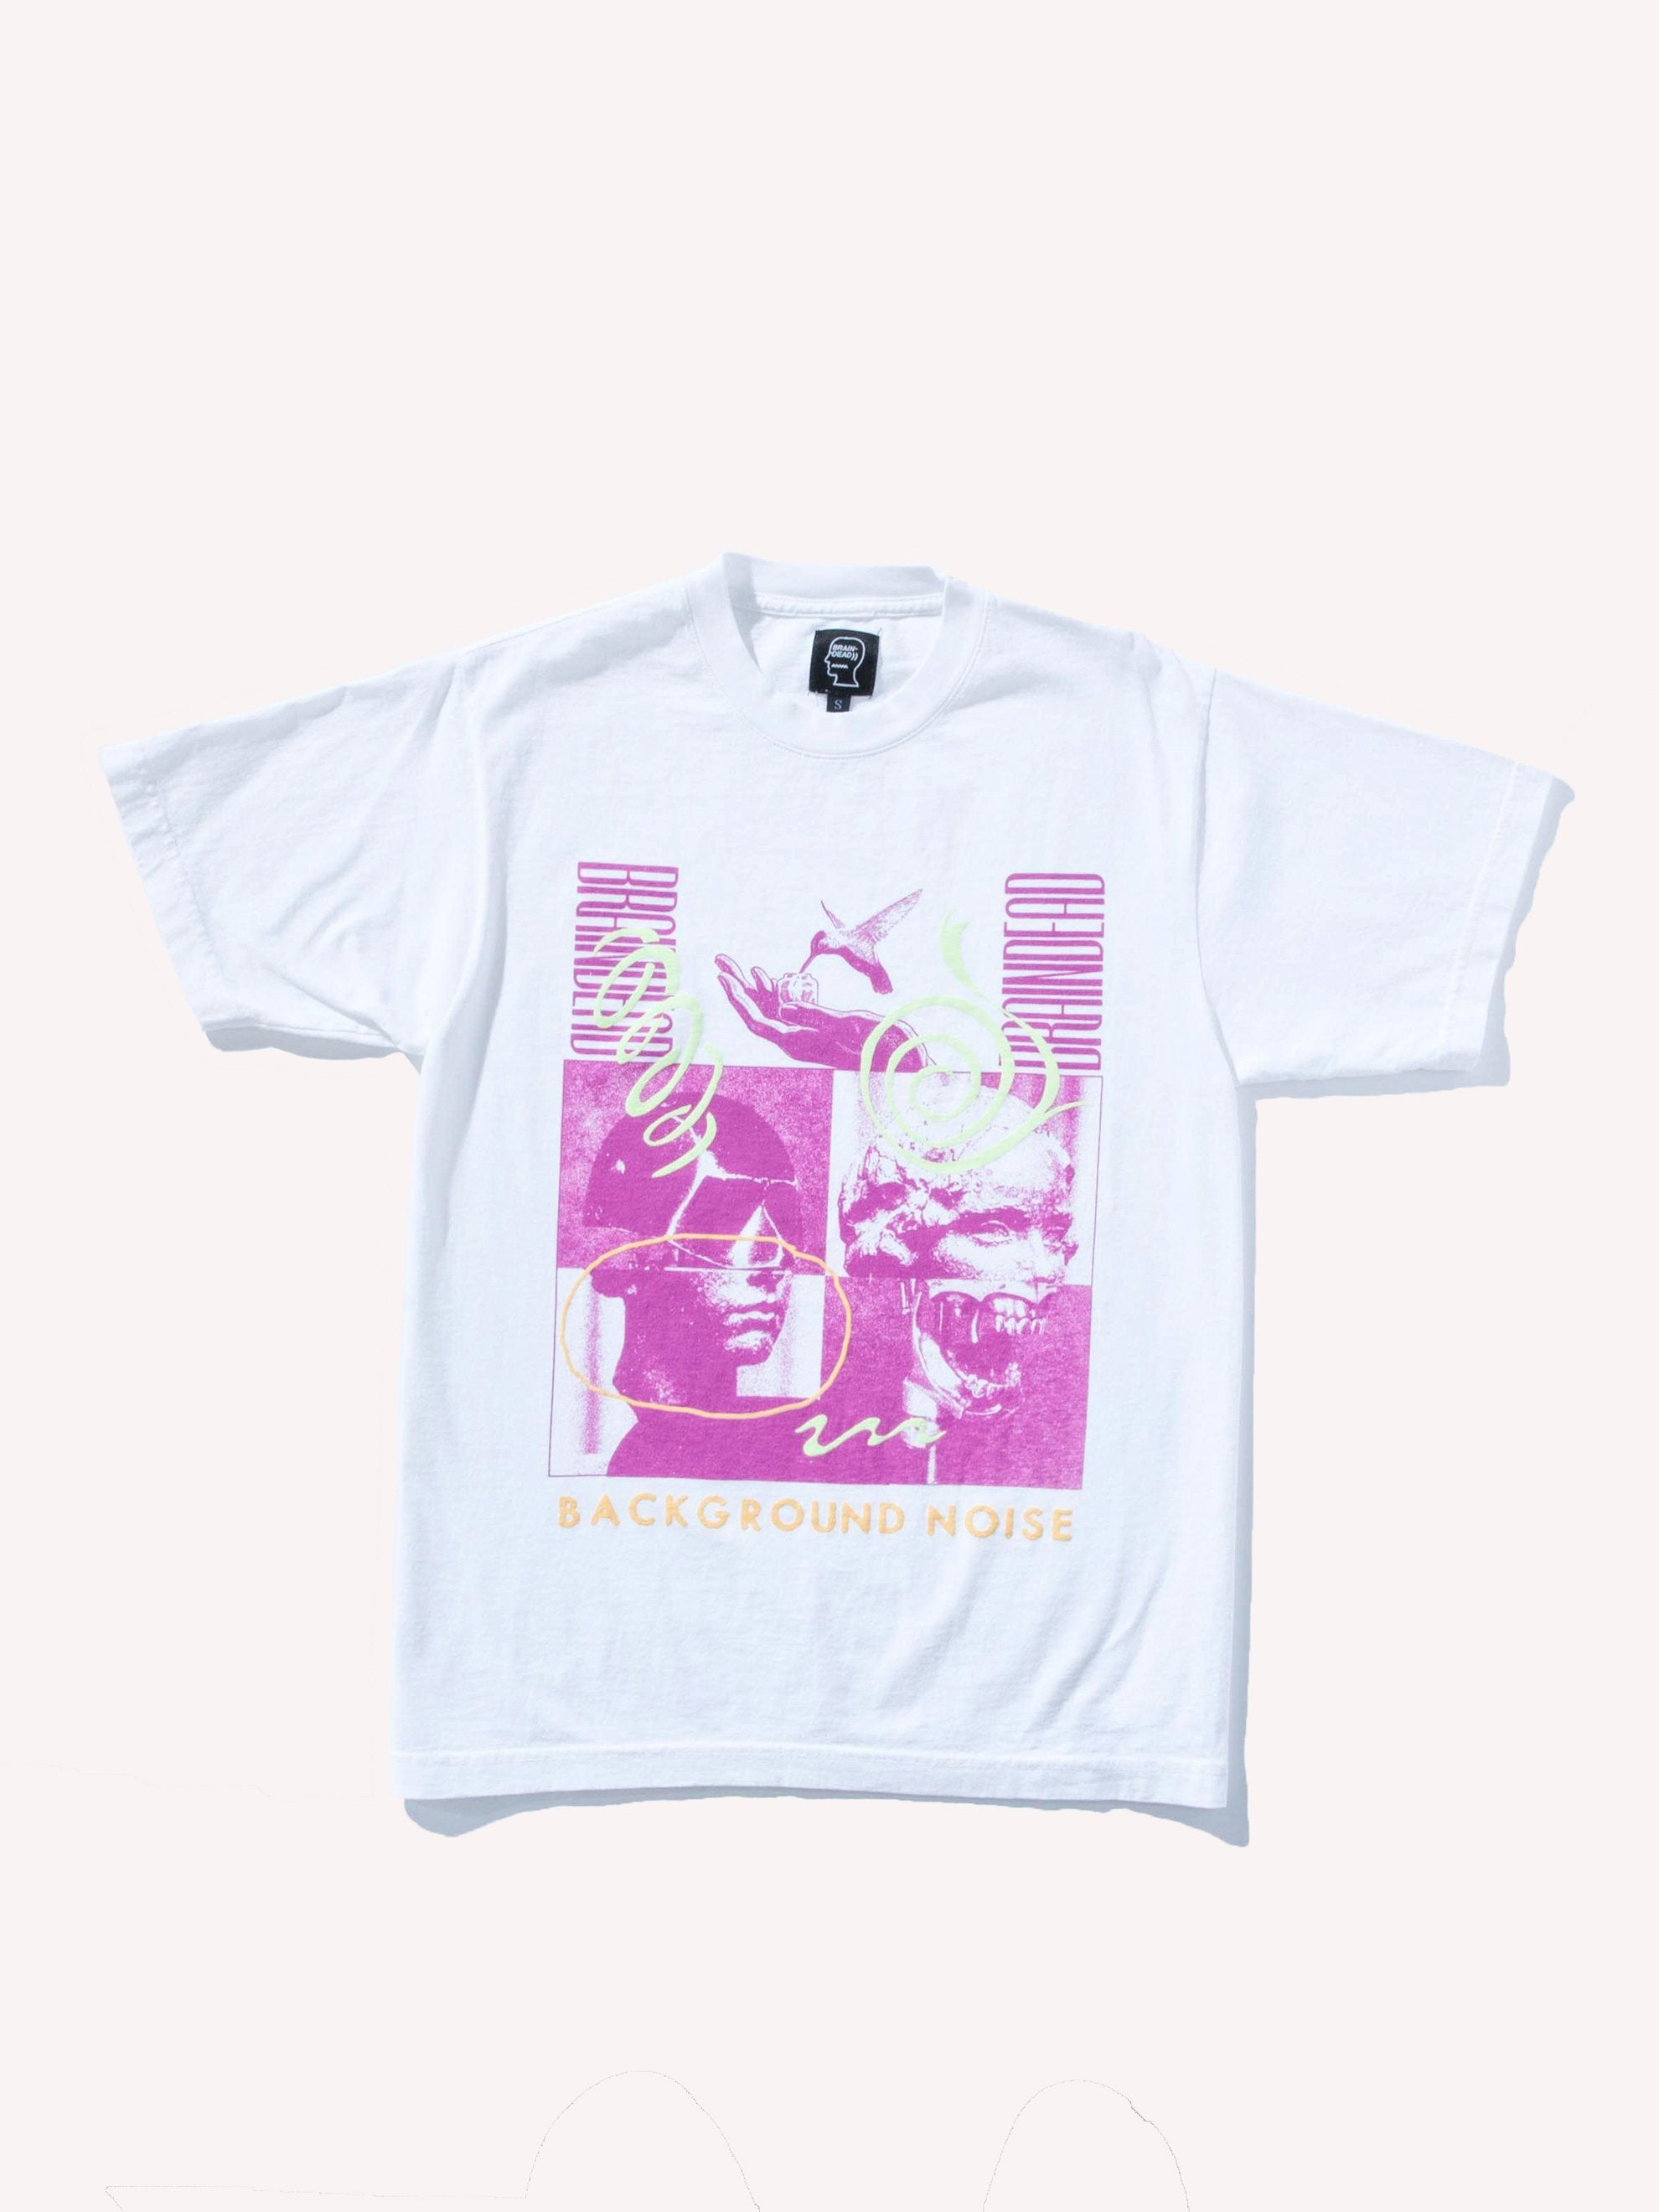 White Background Noise S/S T-Shirt 1